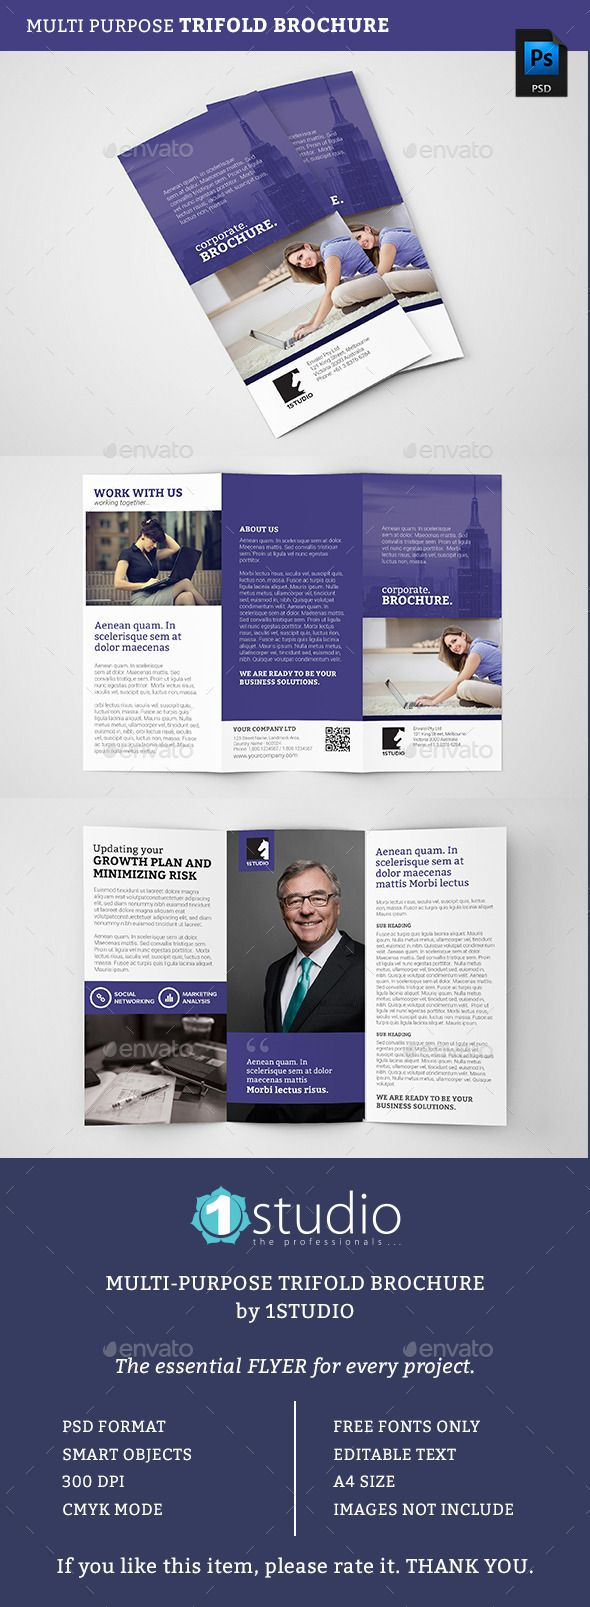 Modern Creative Corporate Trifold Brochure Template #design Download: http://graphicriver.net/item/corporate-trifold-brochure-05/12790464?ref=ksioks